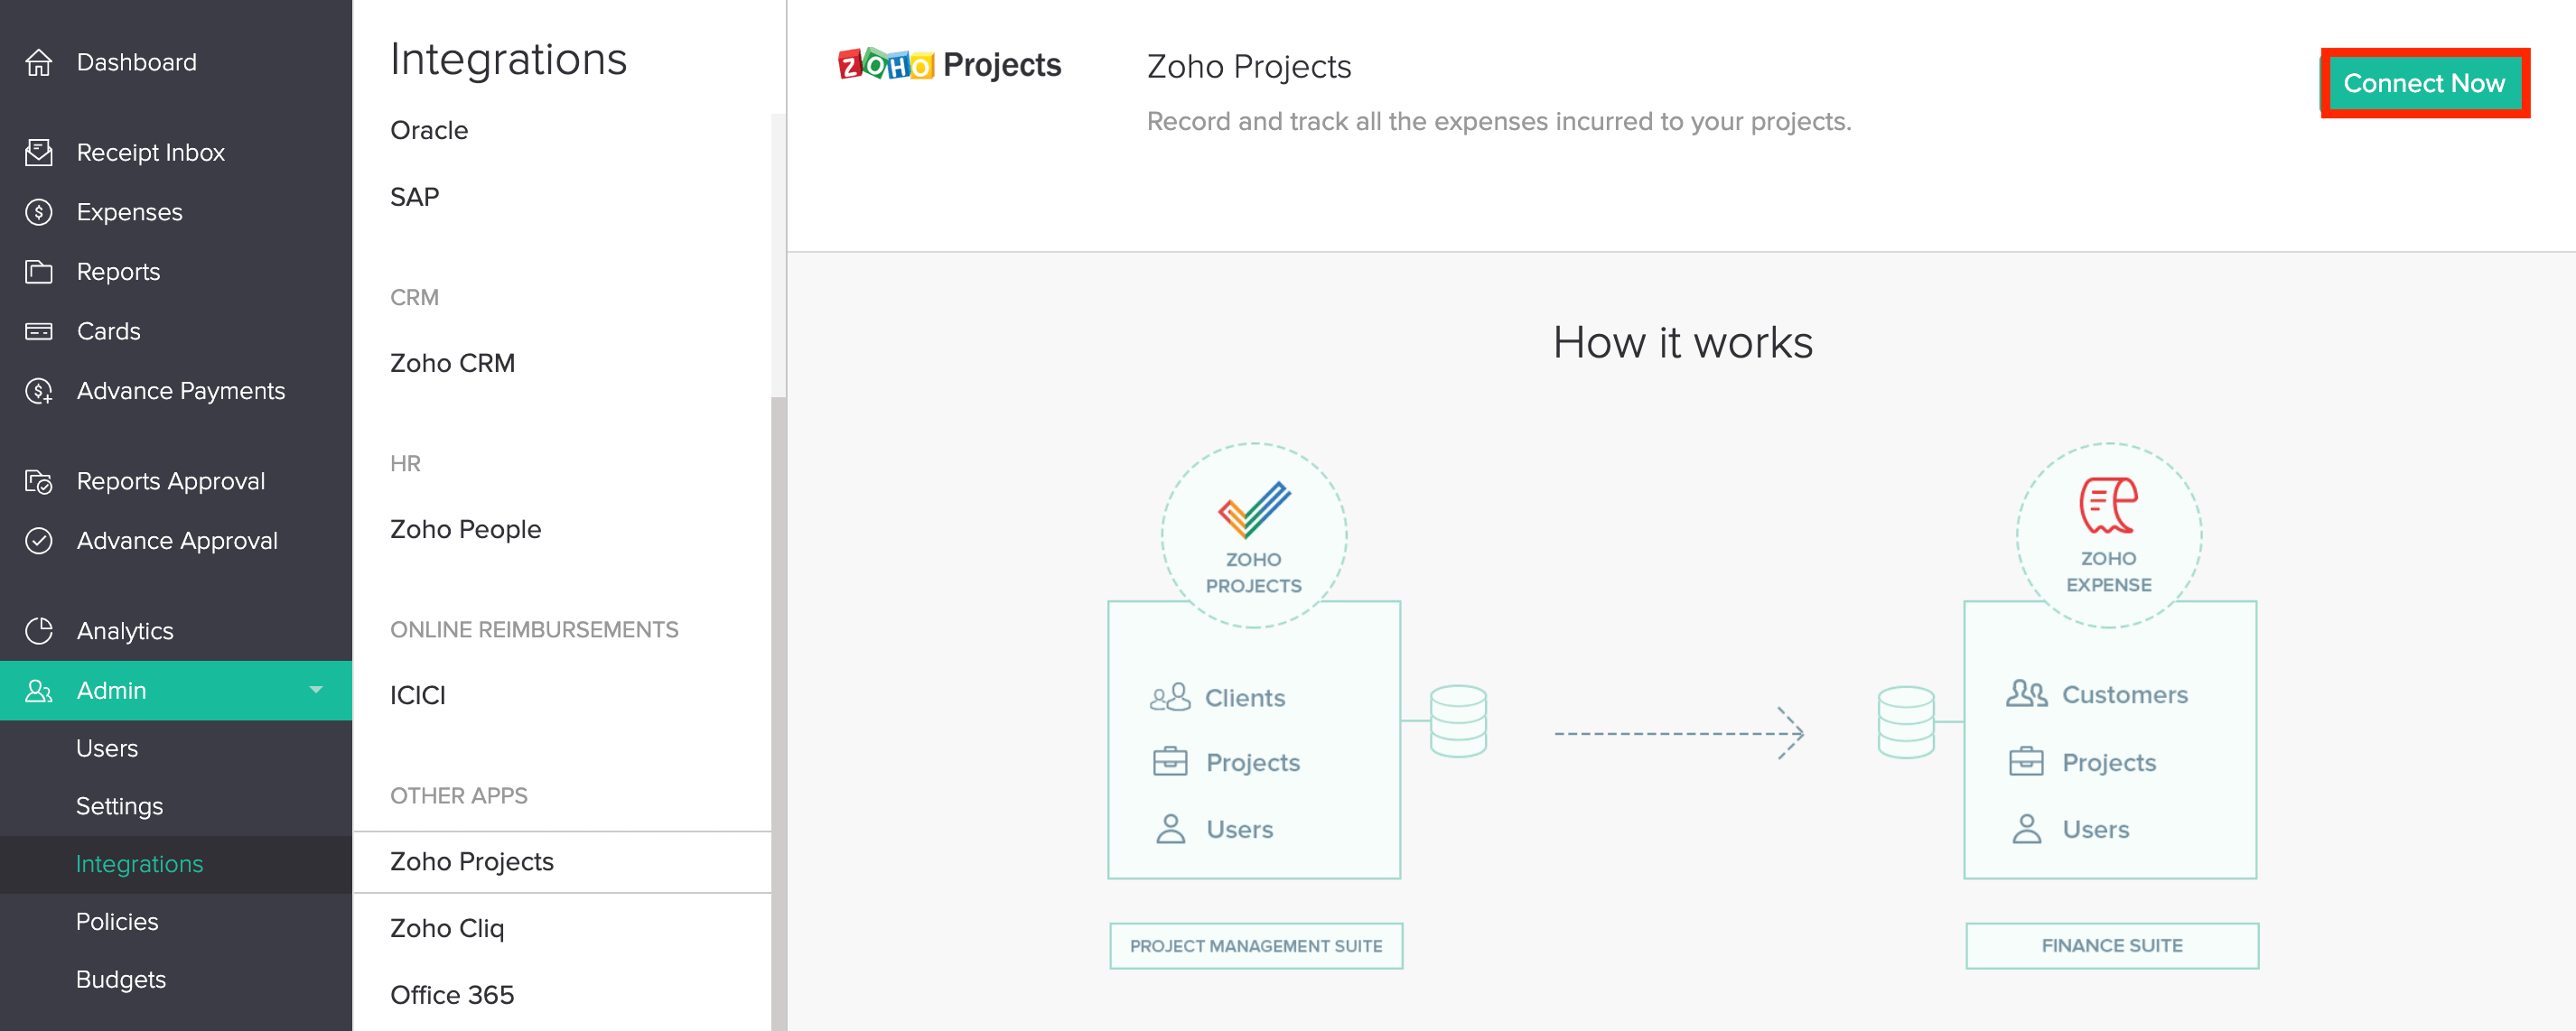 Connect to Zoho Projects